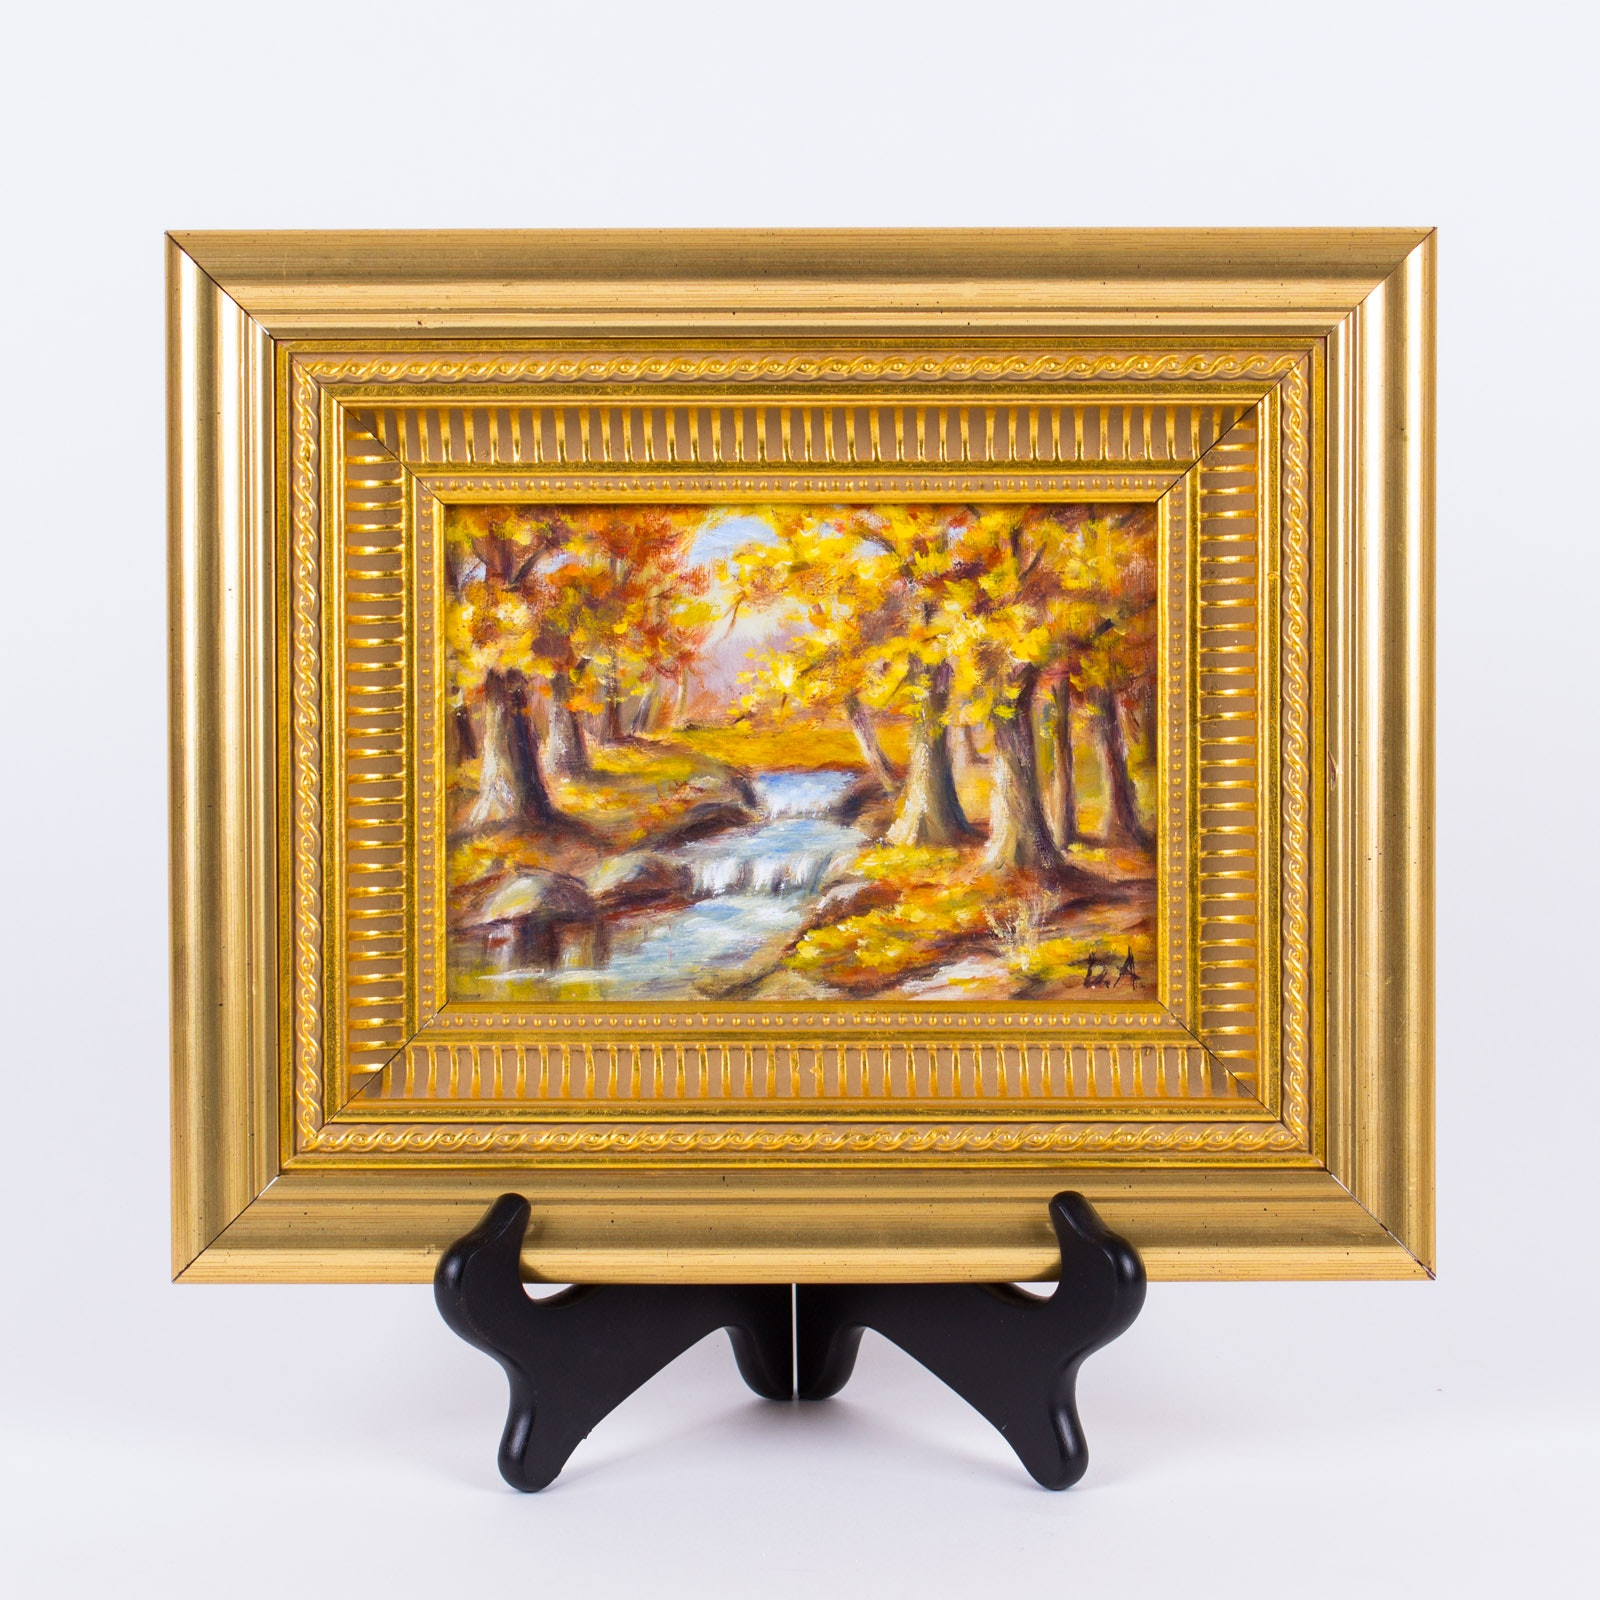 Framed Wooded Landscape Oil Painting on Canvas